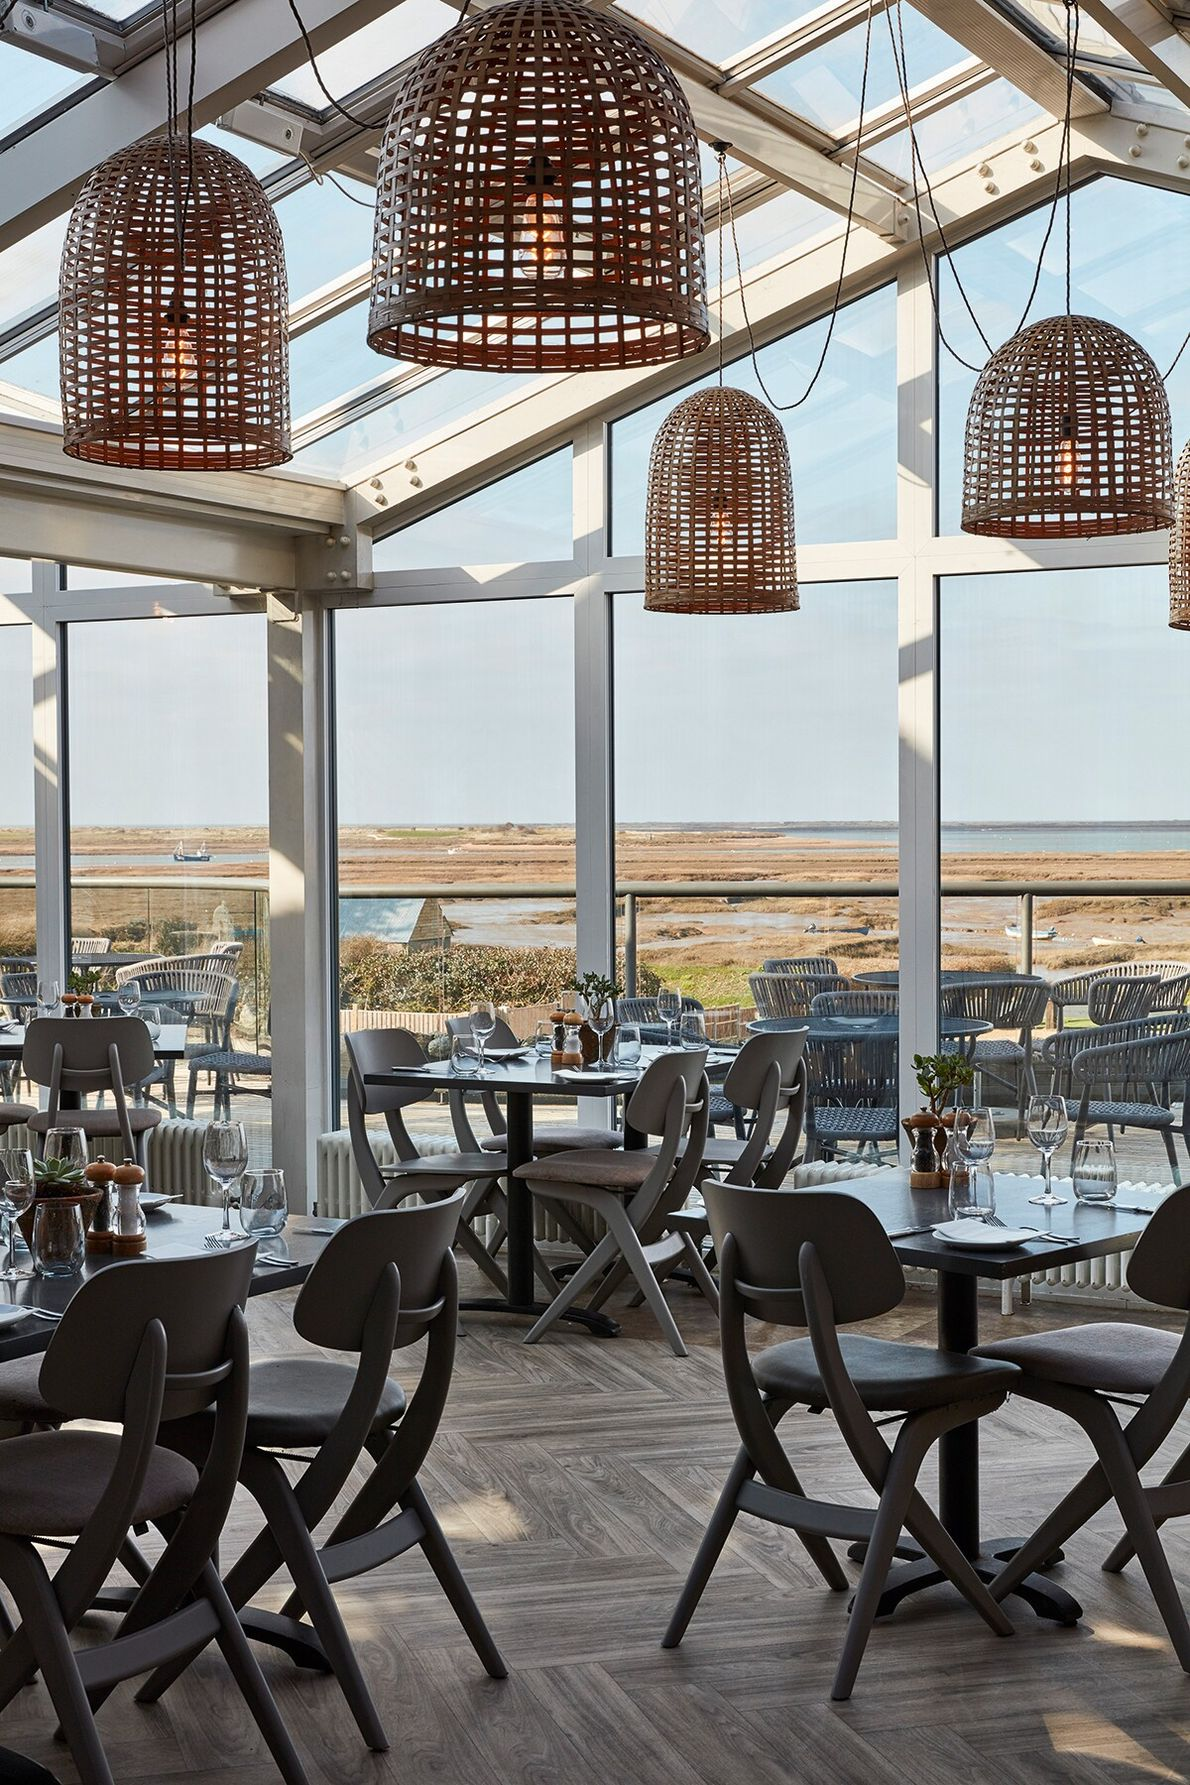 The White Horse has a bright conservatory and wraparound terrace that allows diners to enjoy unobstructed ...